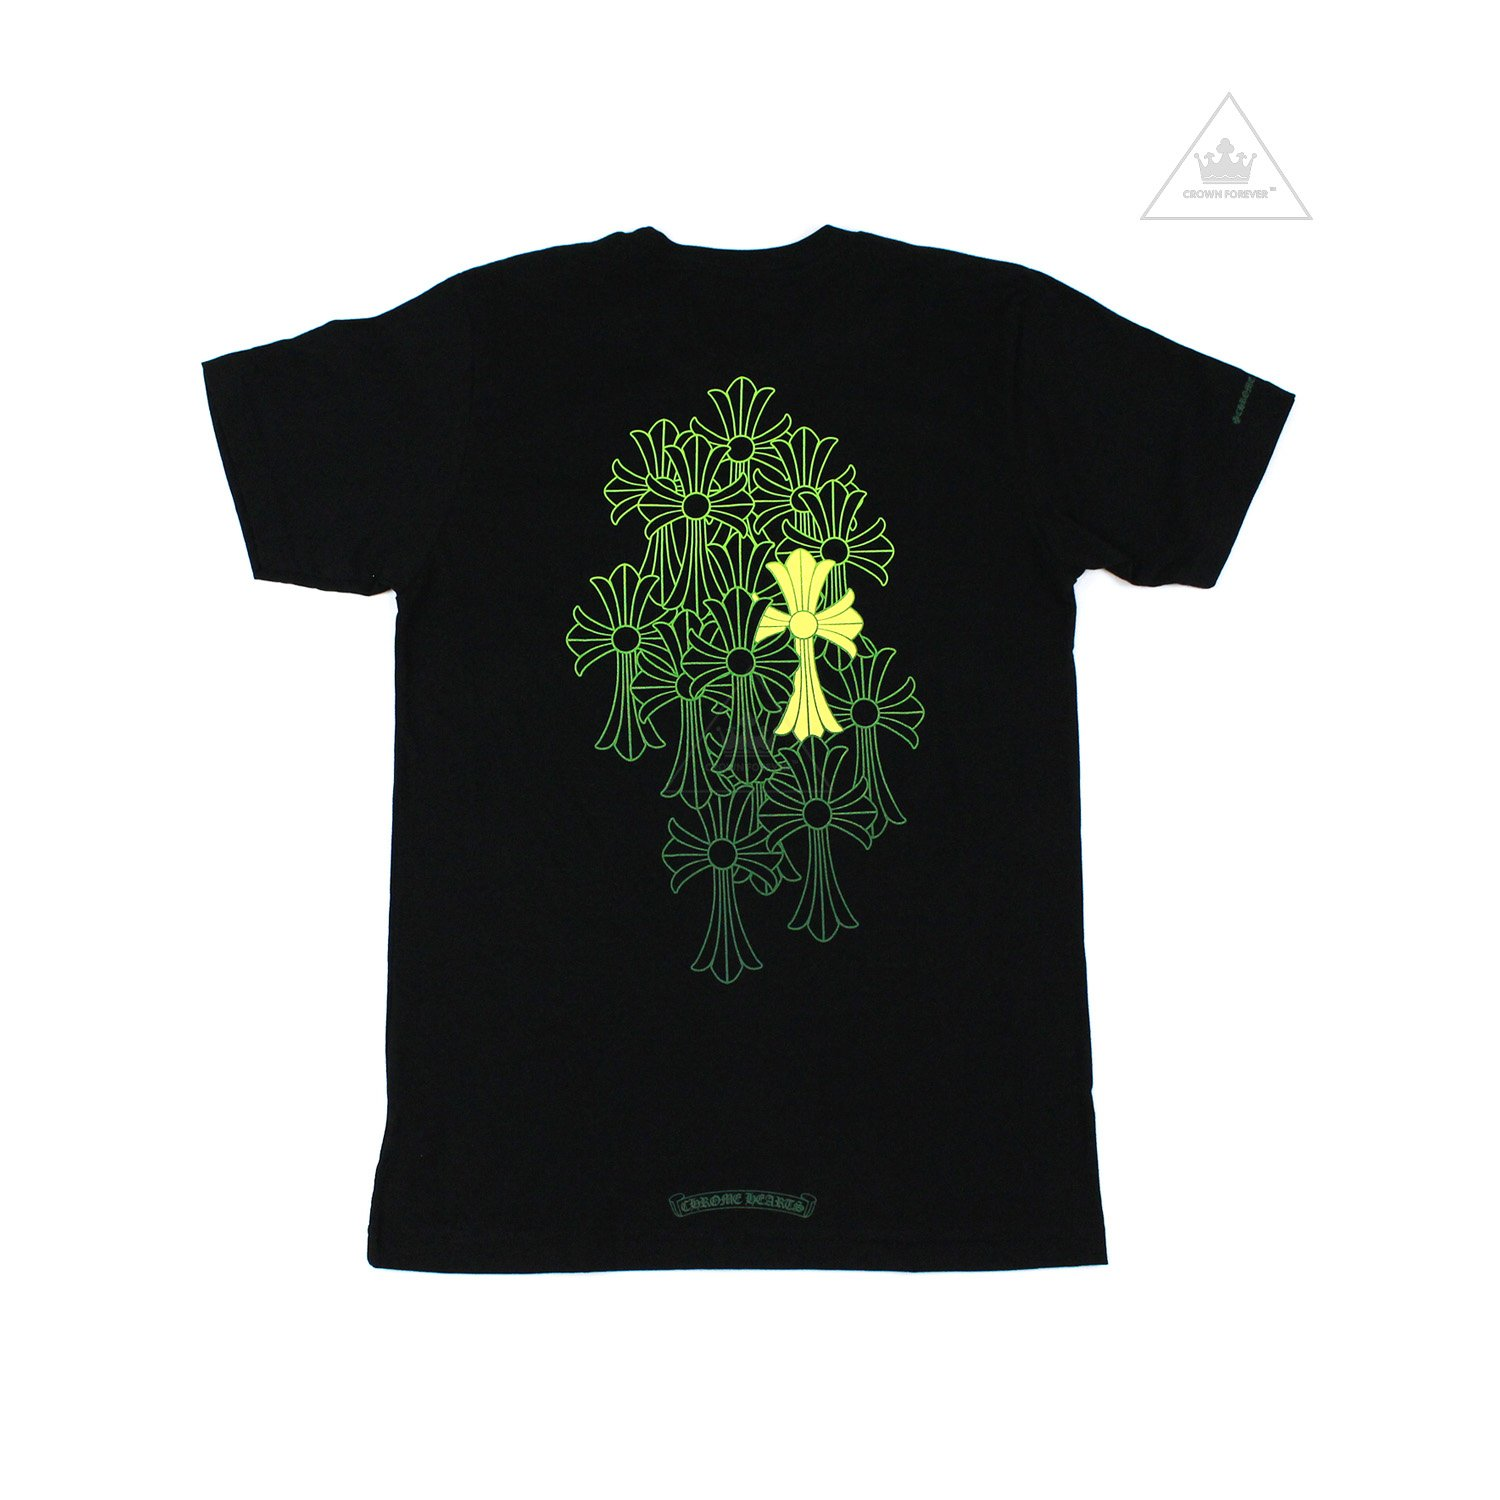 CH Green Cemetery Cross Short Sleeve T Shirt Black by CHROME HEARTS, available on crownforeverla.com for $275 Kylie Jenner Outerwear SIMILAR PRODUCT